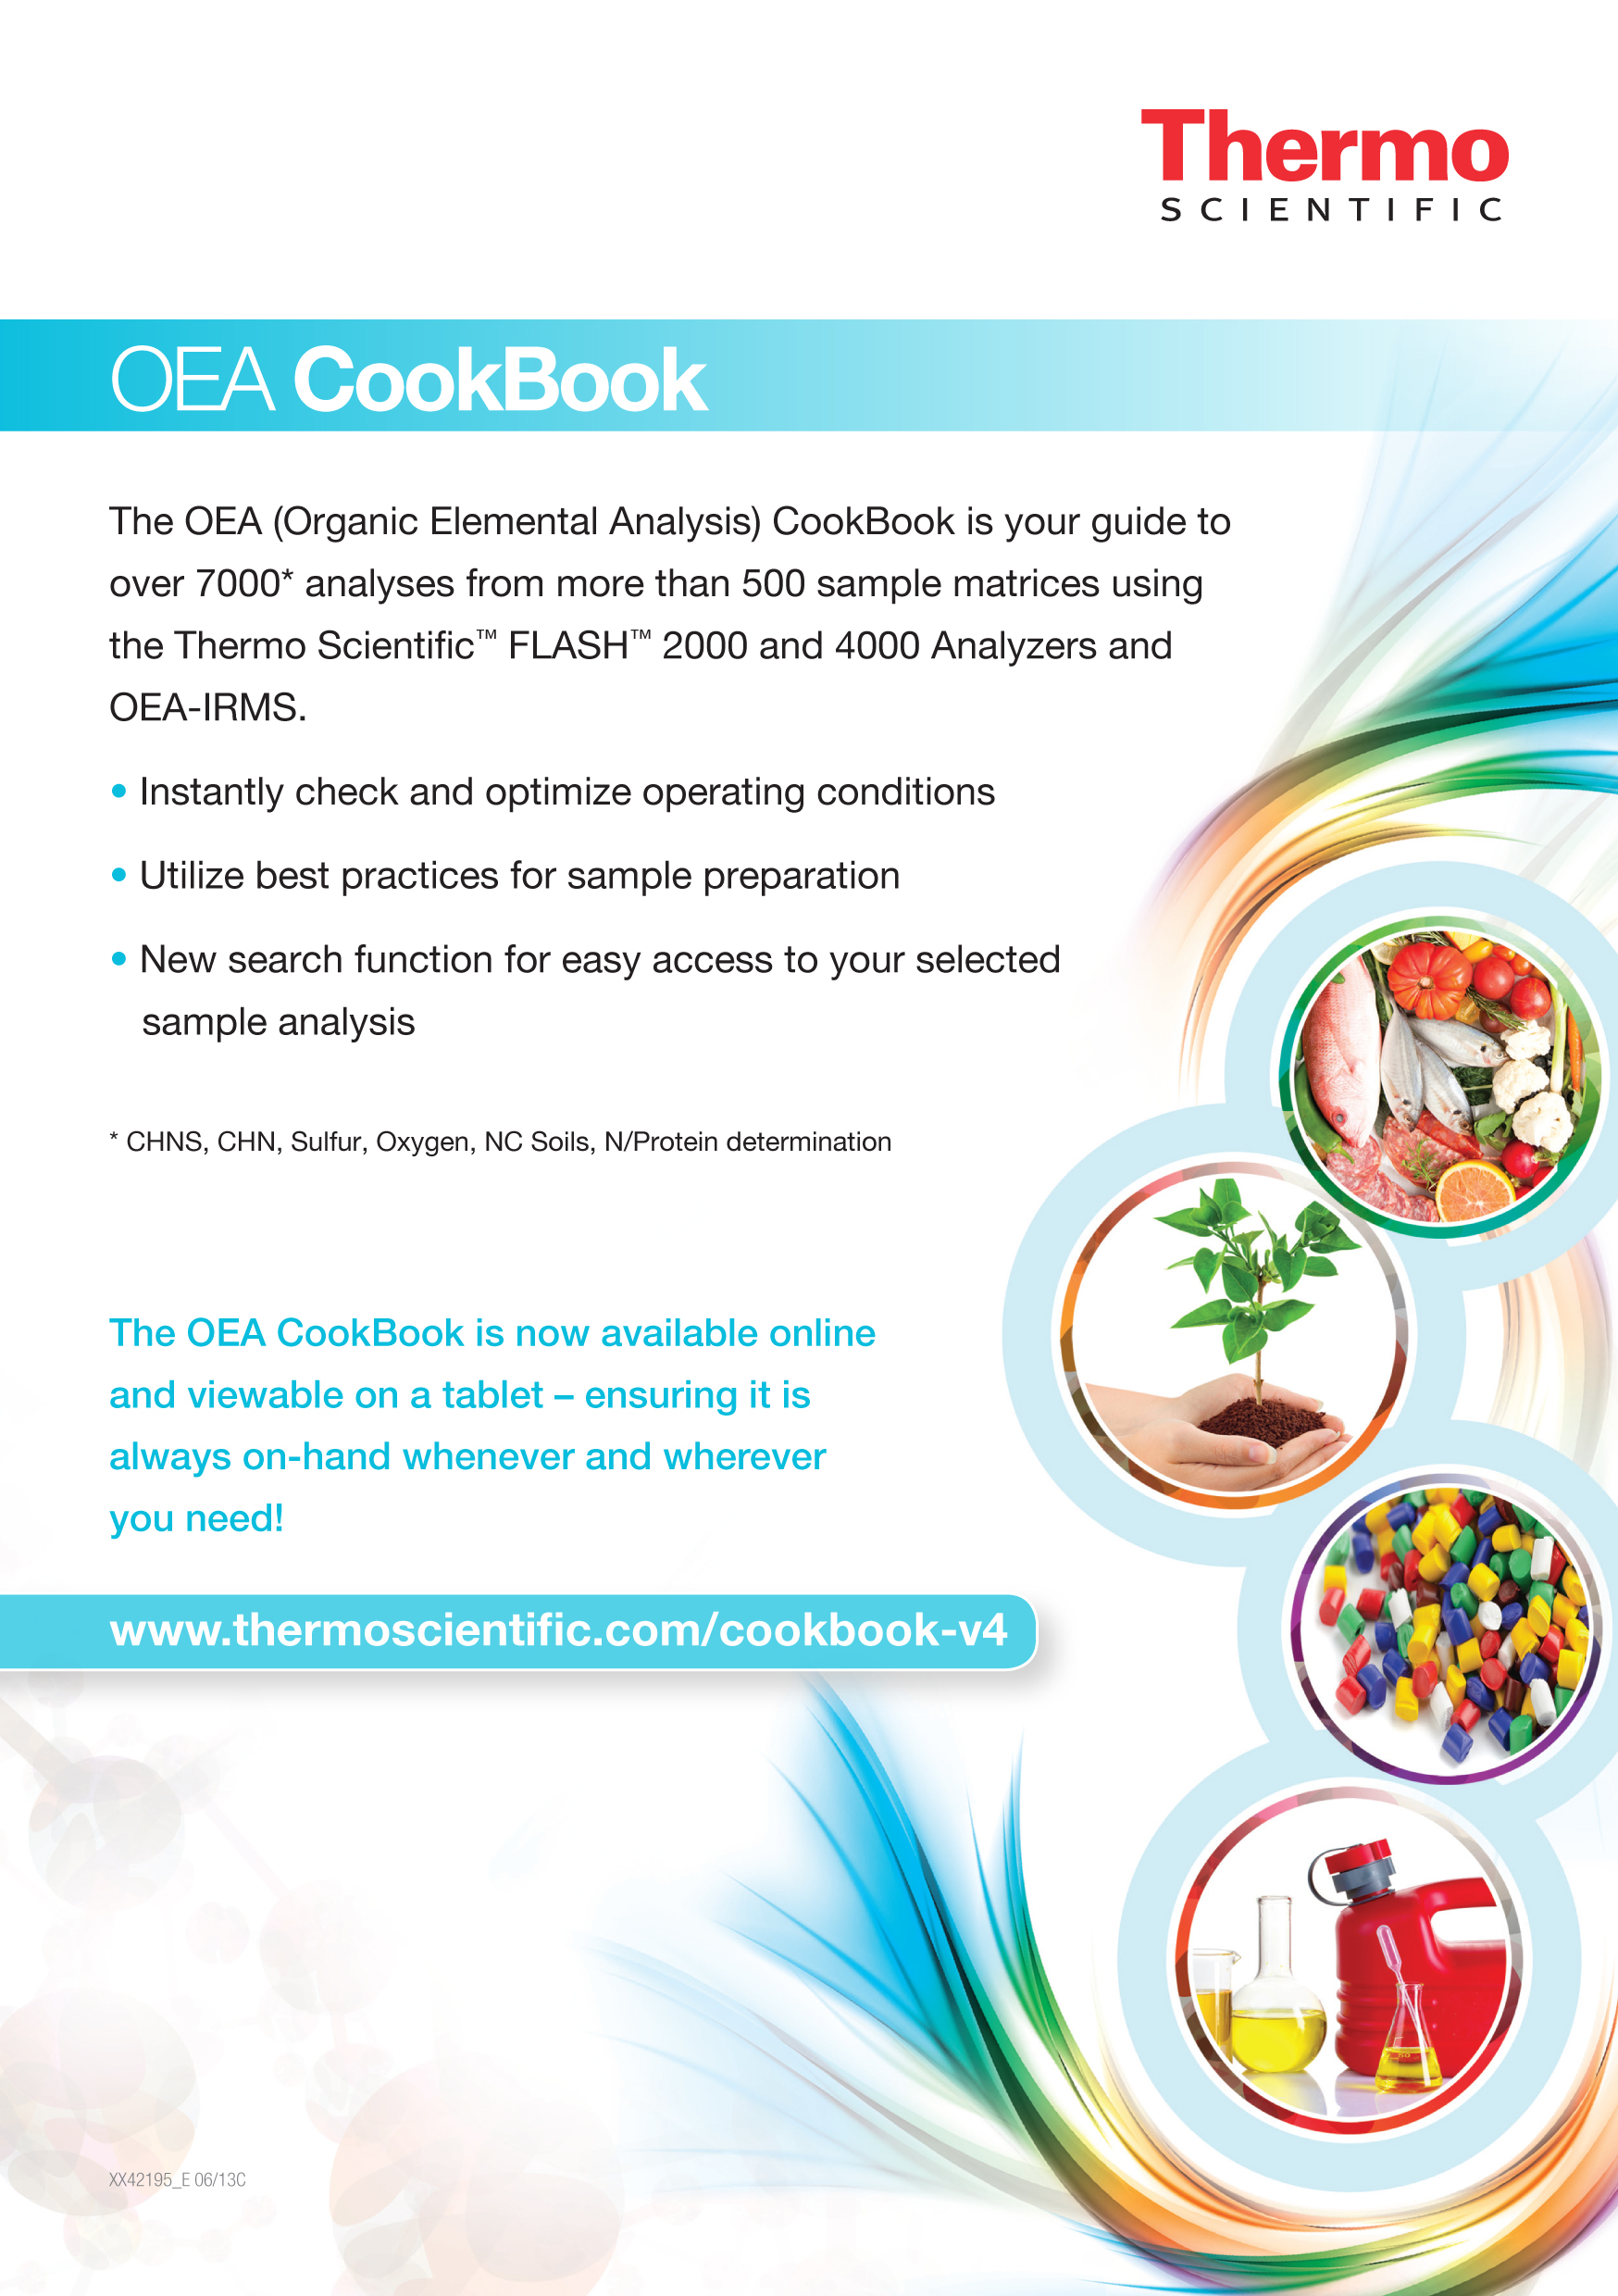 OEA CookBook